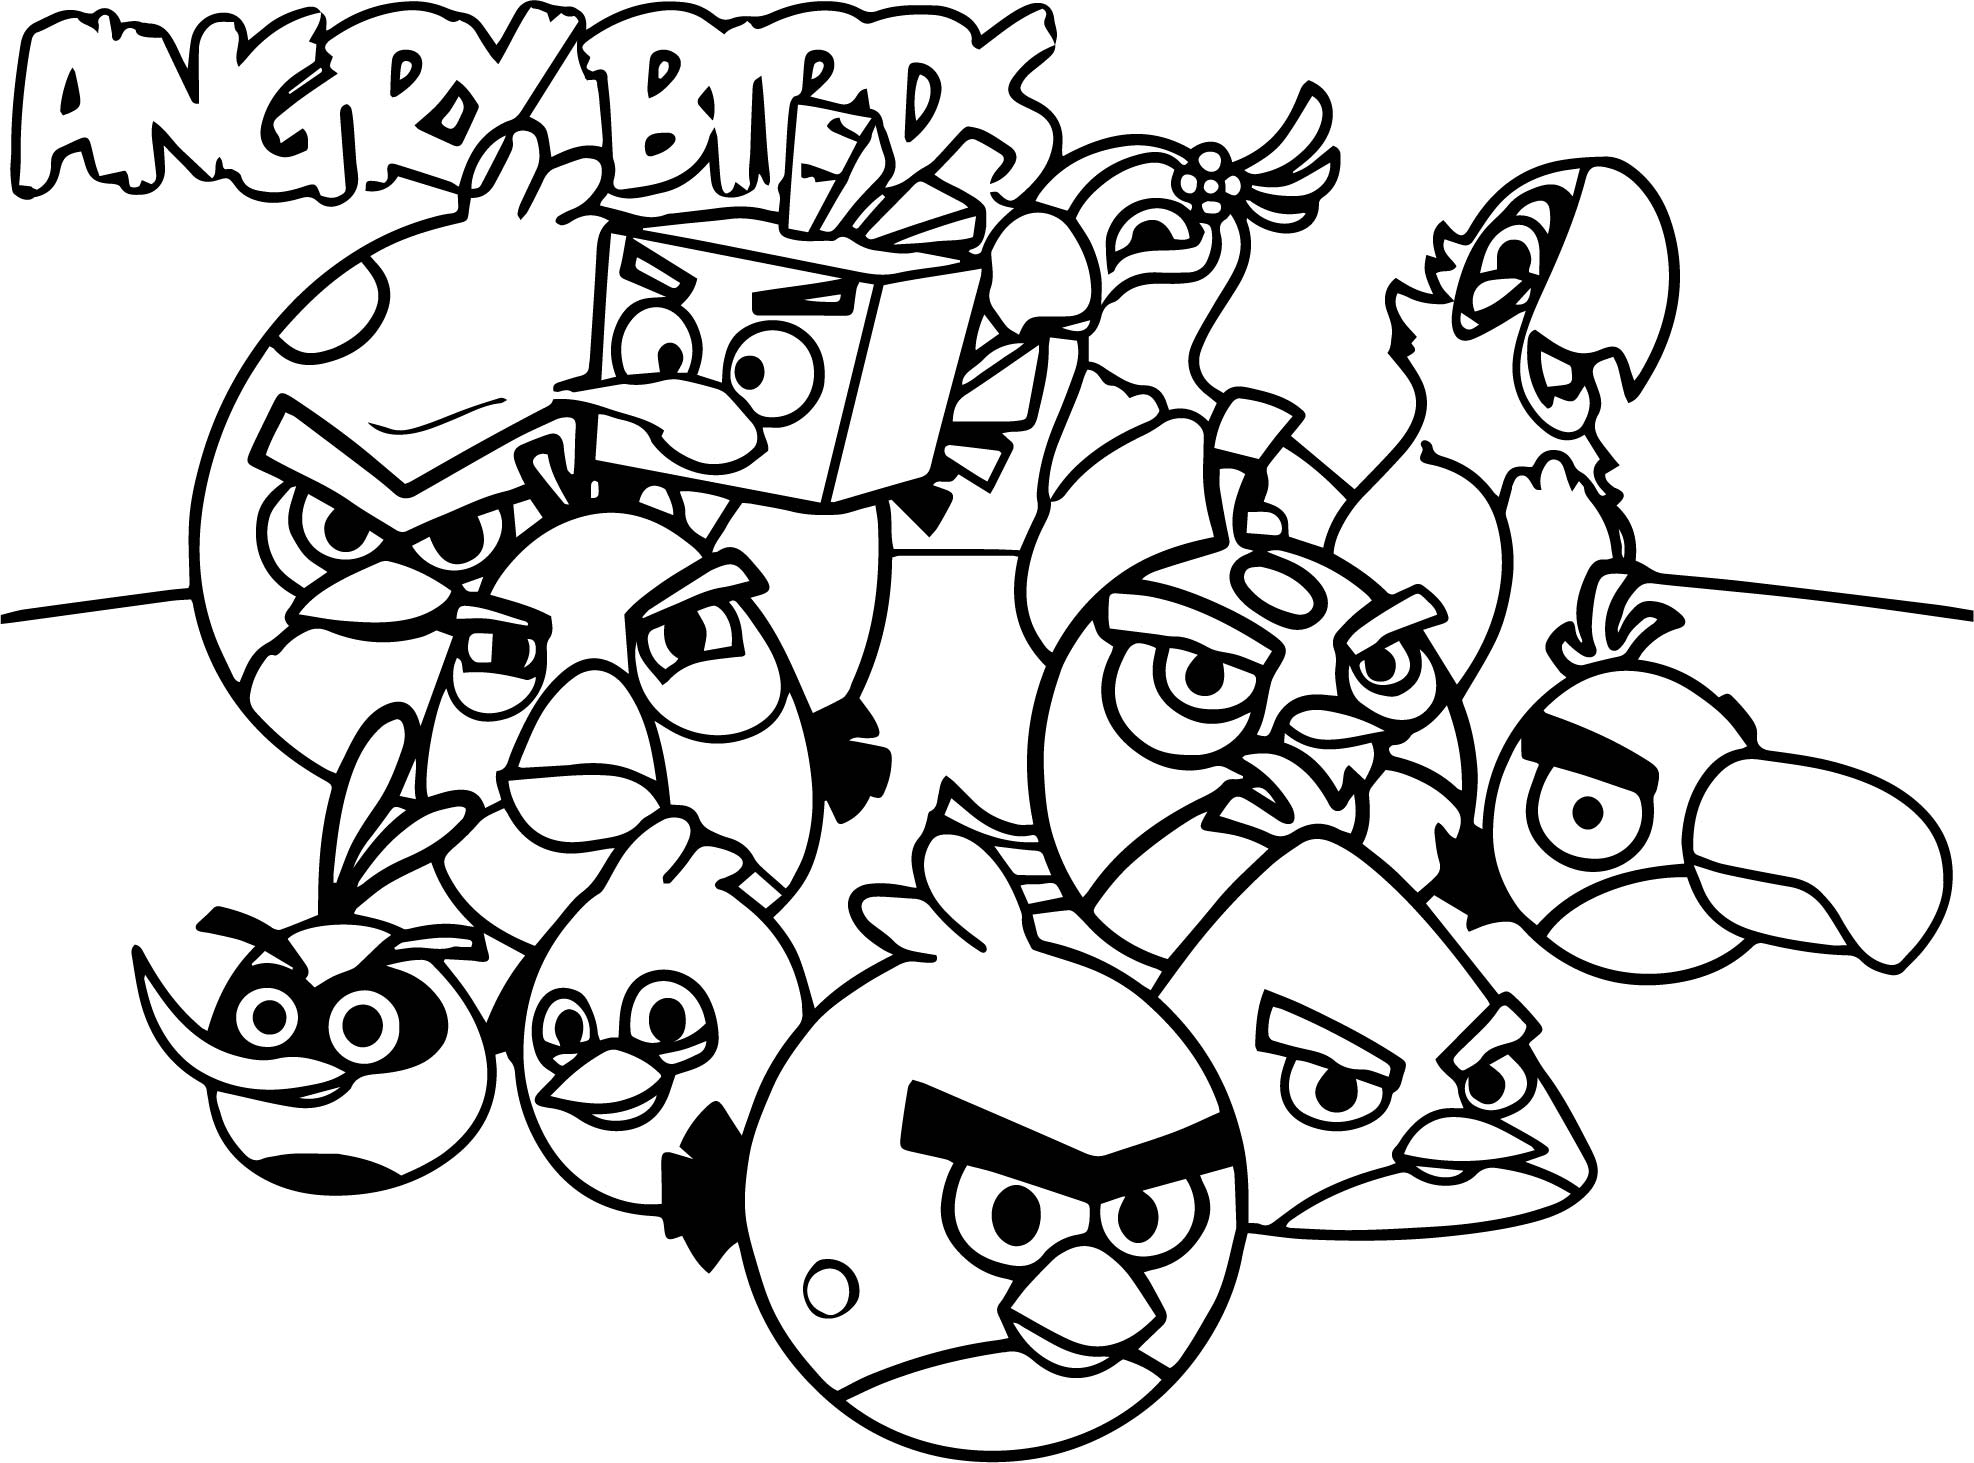 Angry birds wallpaper color coloring page for Blue angry bird coloring page